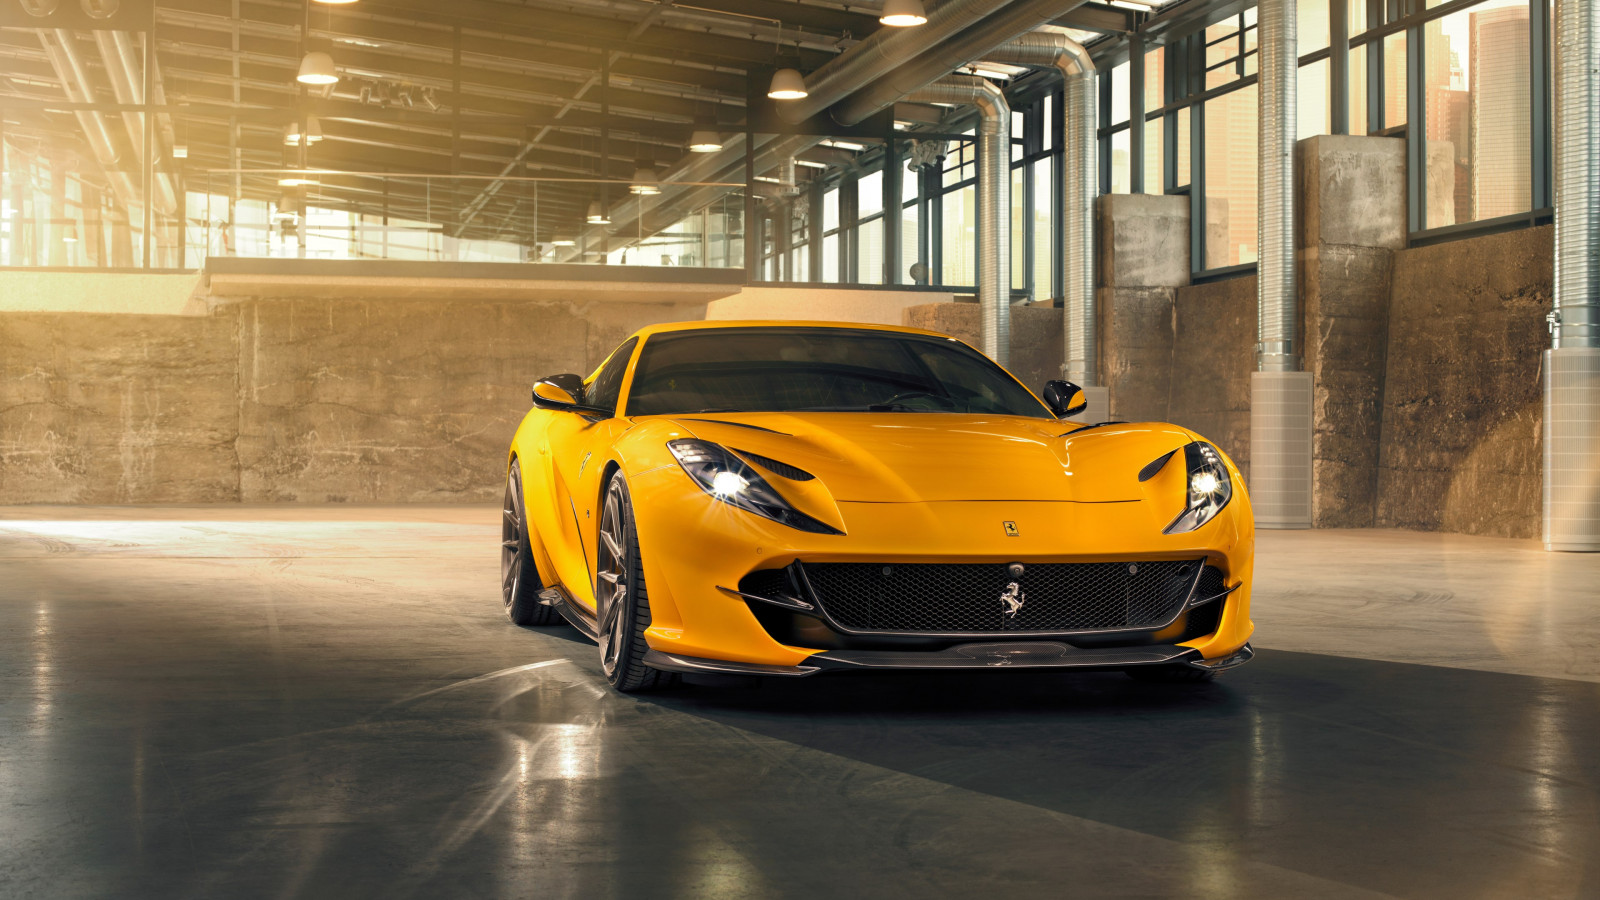 Ferrari 812 Superfast wallpaper 1600x900